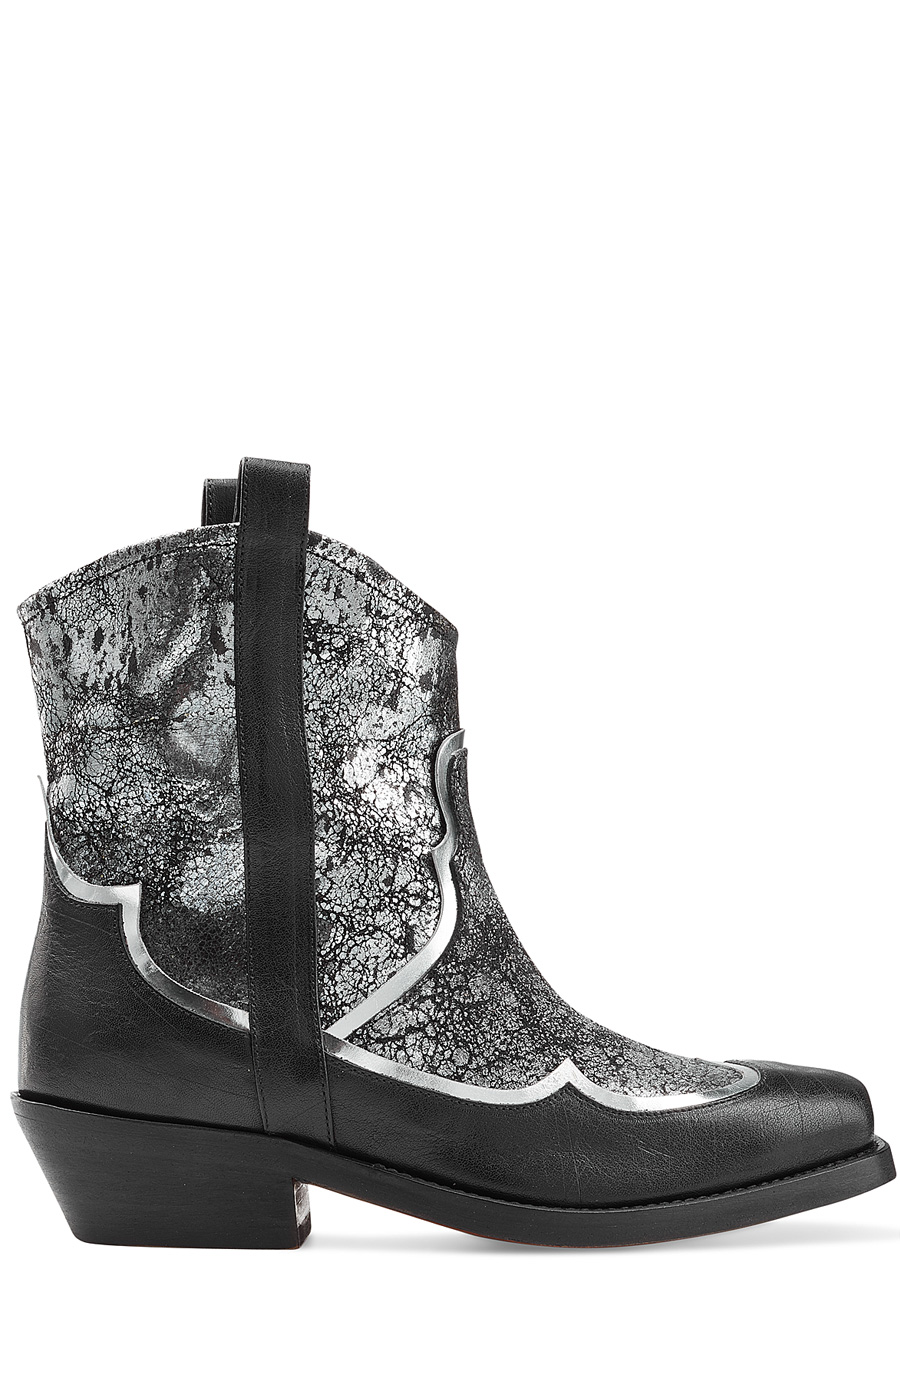 Rupert Sanderson Biboa Metallic Leather Ankle Boots In Silver